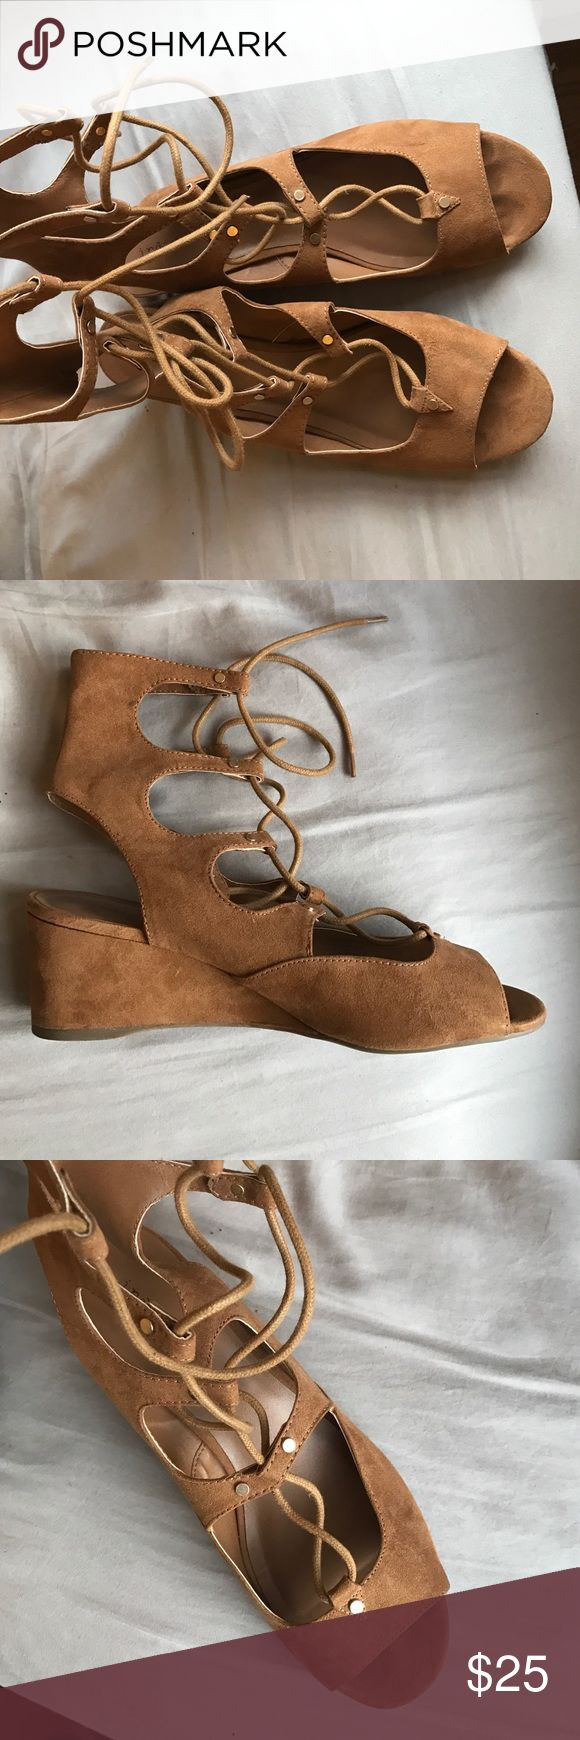 Tan strappy mini wedges size 9.5 Tan strappy mini wedges! Worn once. Size 9.5 indigo Shoes Wedges